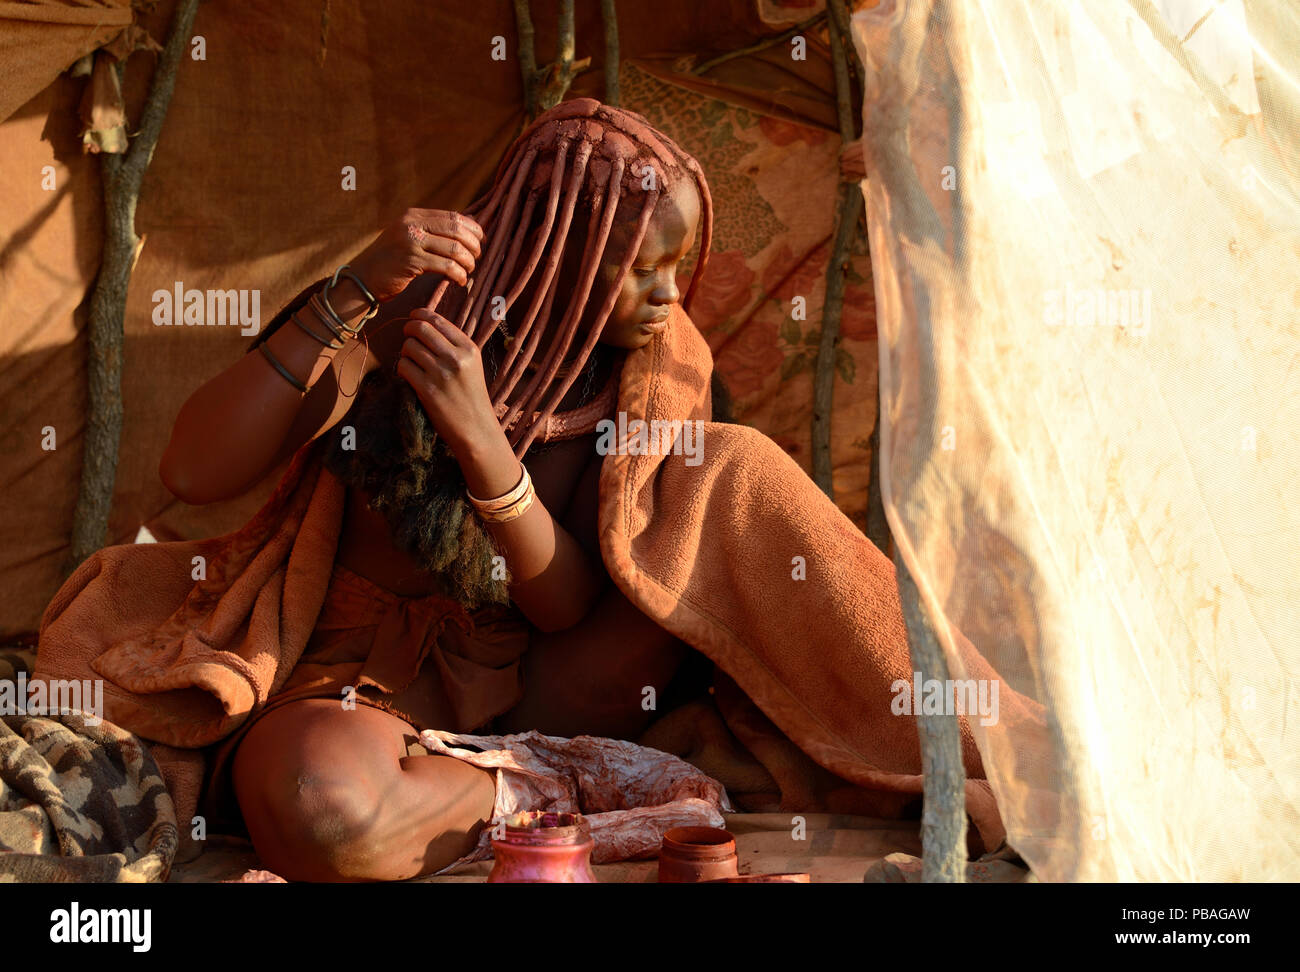 Himba woman applying Otjize (a mixture of butter, ochre and ash) to her hair. Marienfluss Valley. Kaokoland, Namibia October 2015 - Stock Image